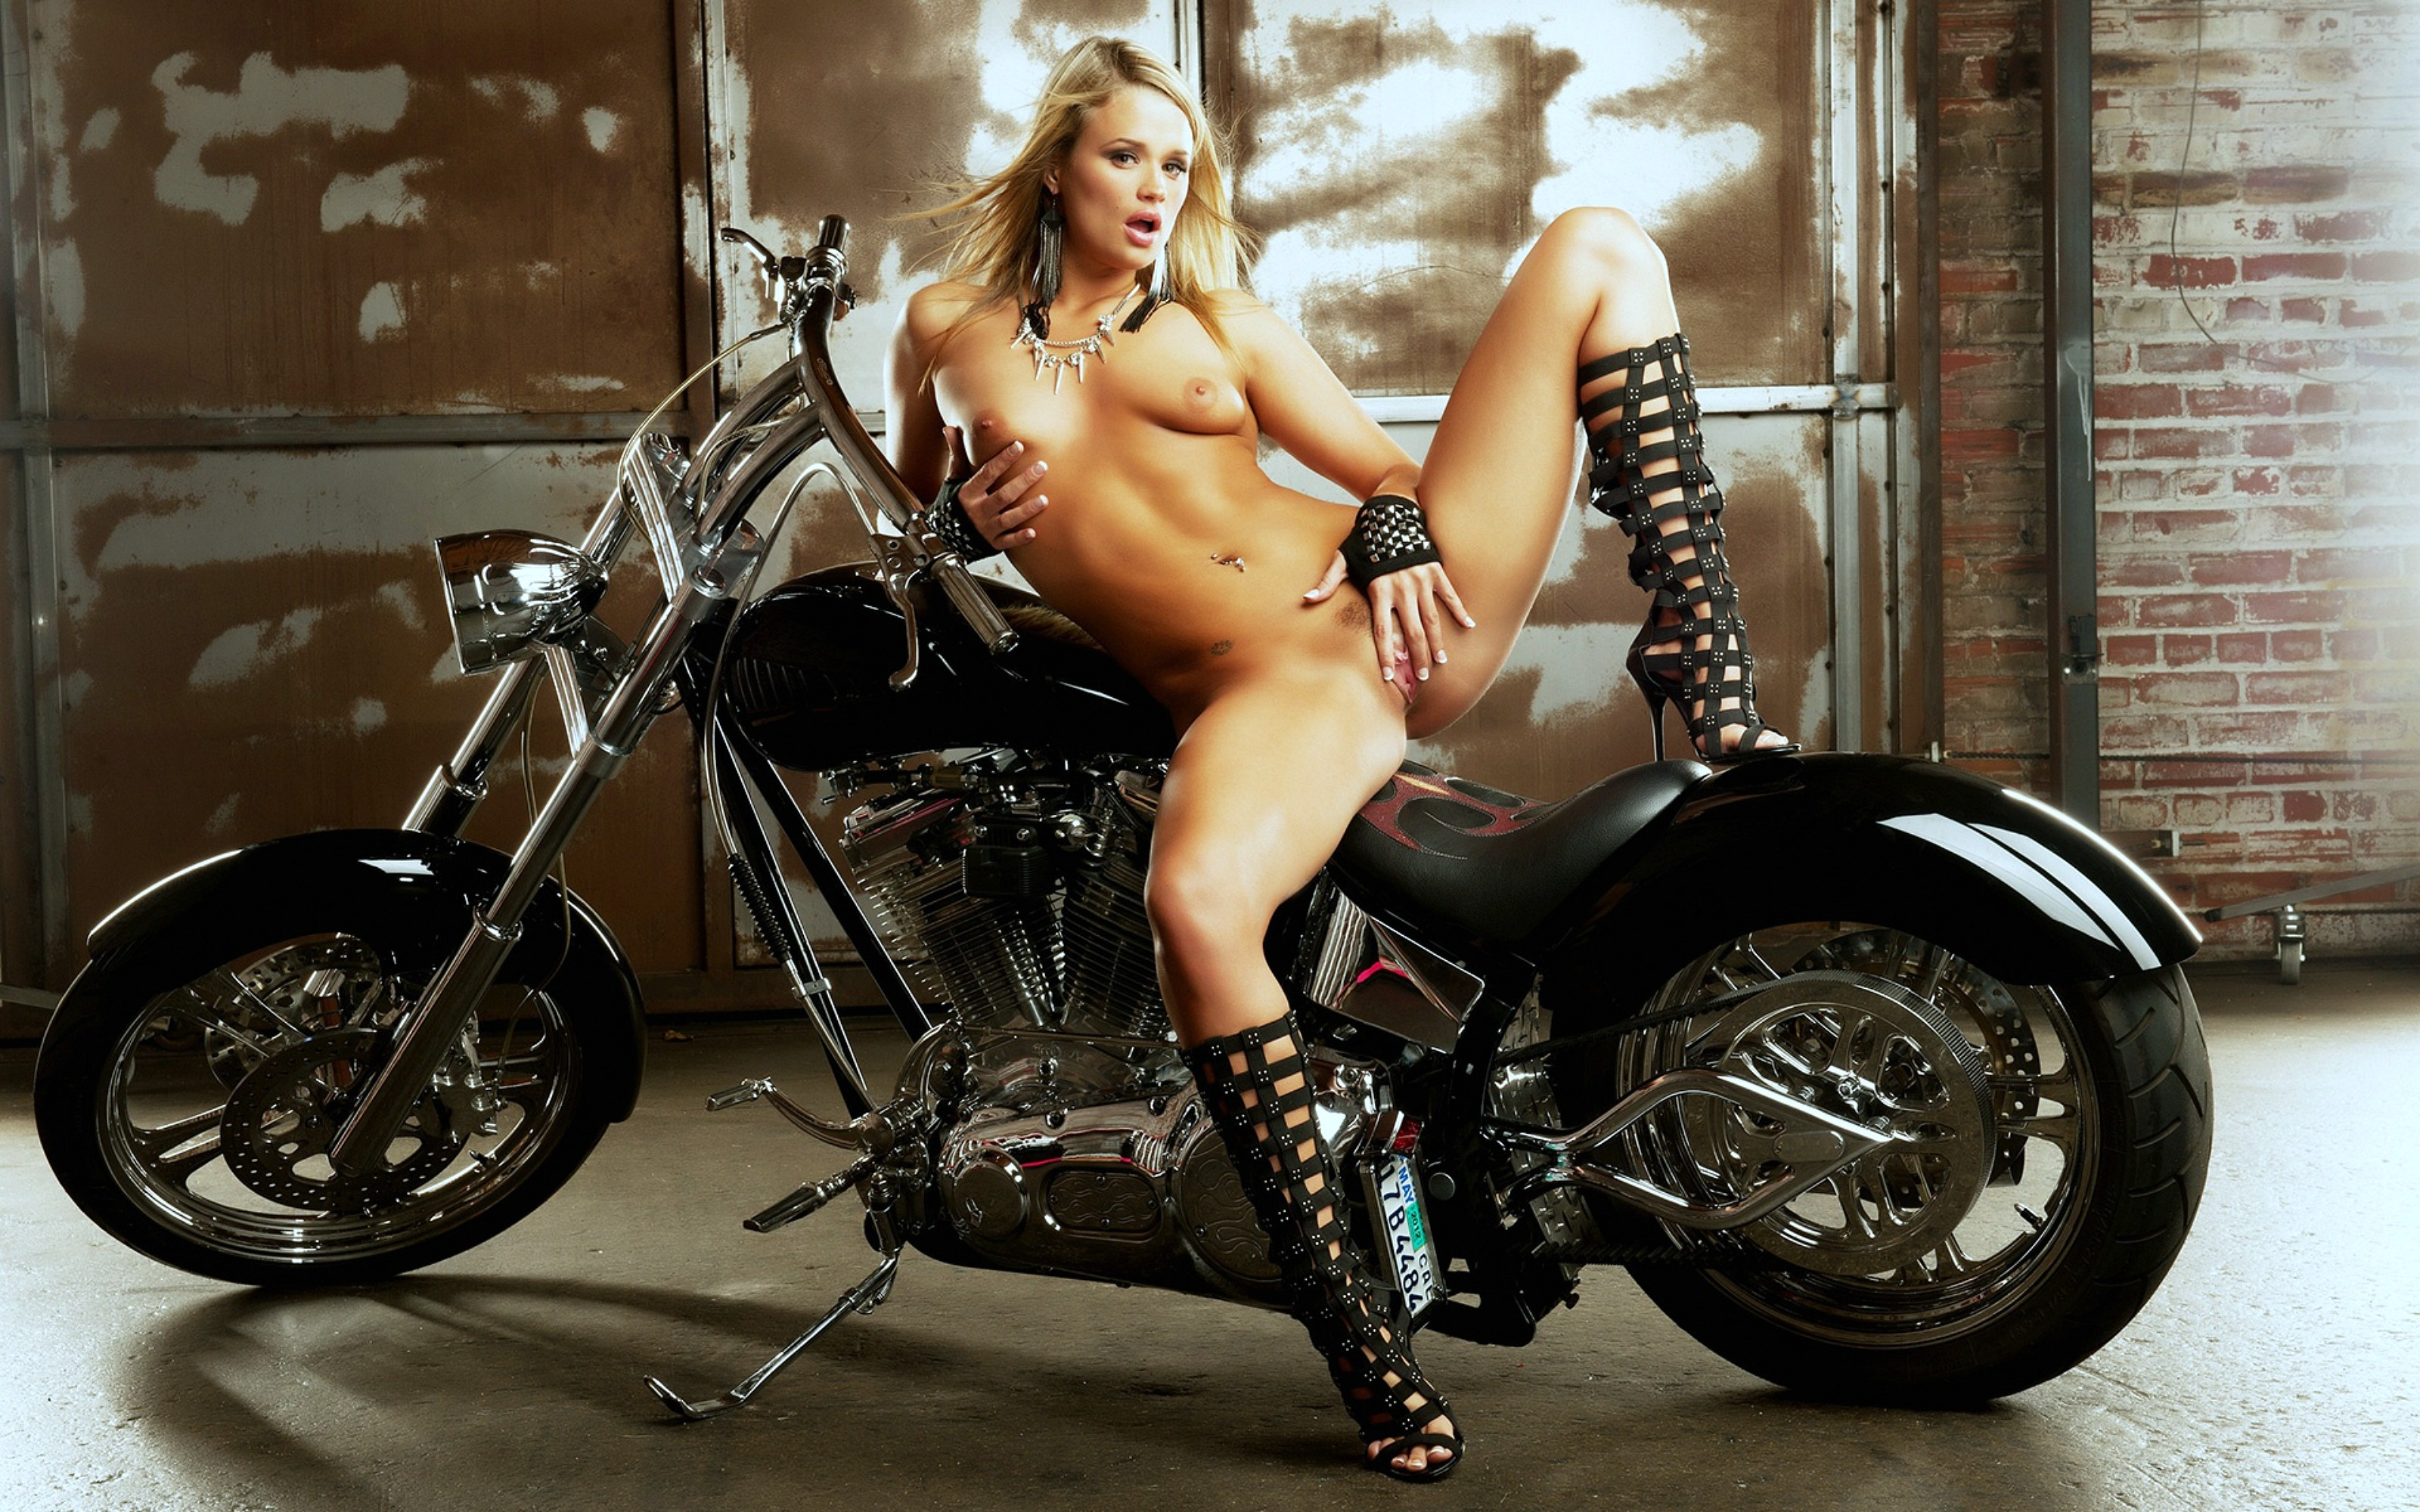 crazy-tattoos-real-naked-biker-girls-pictures